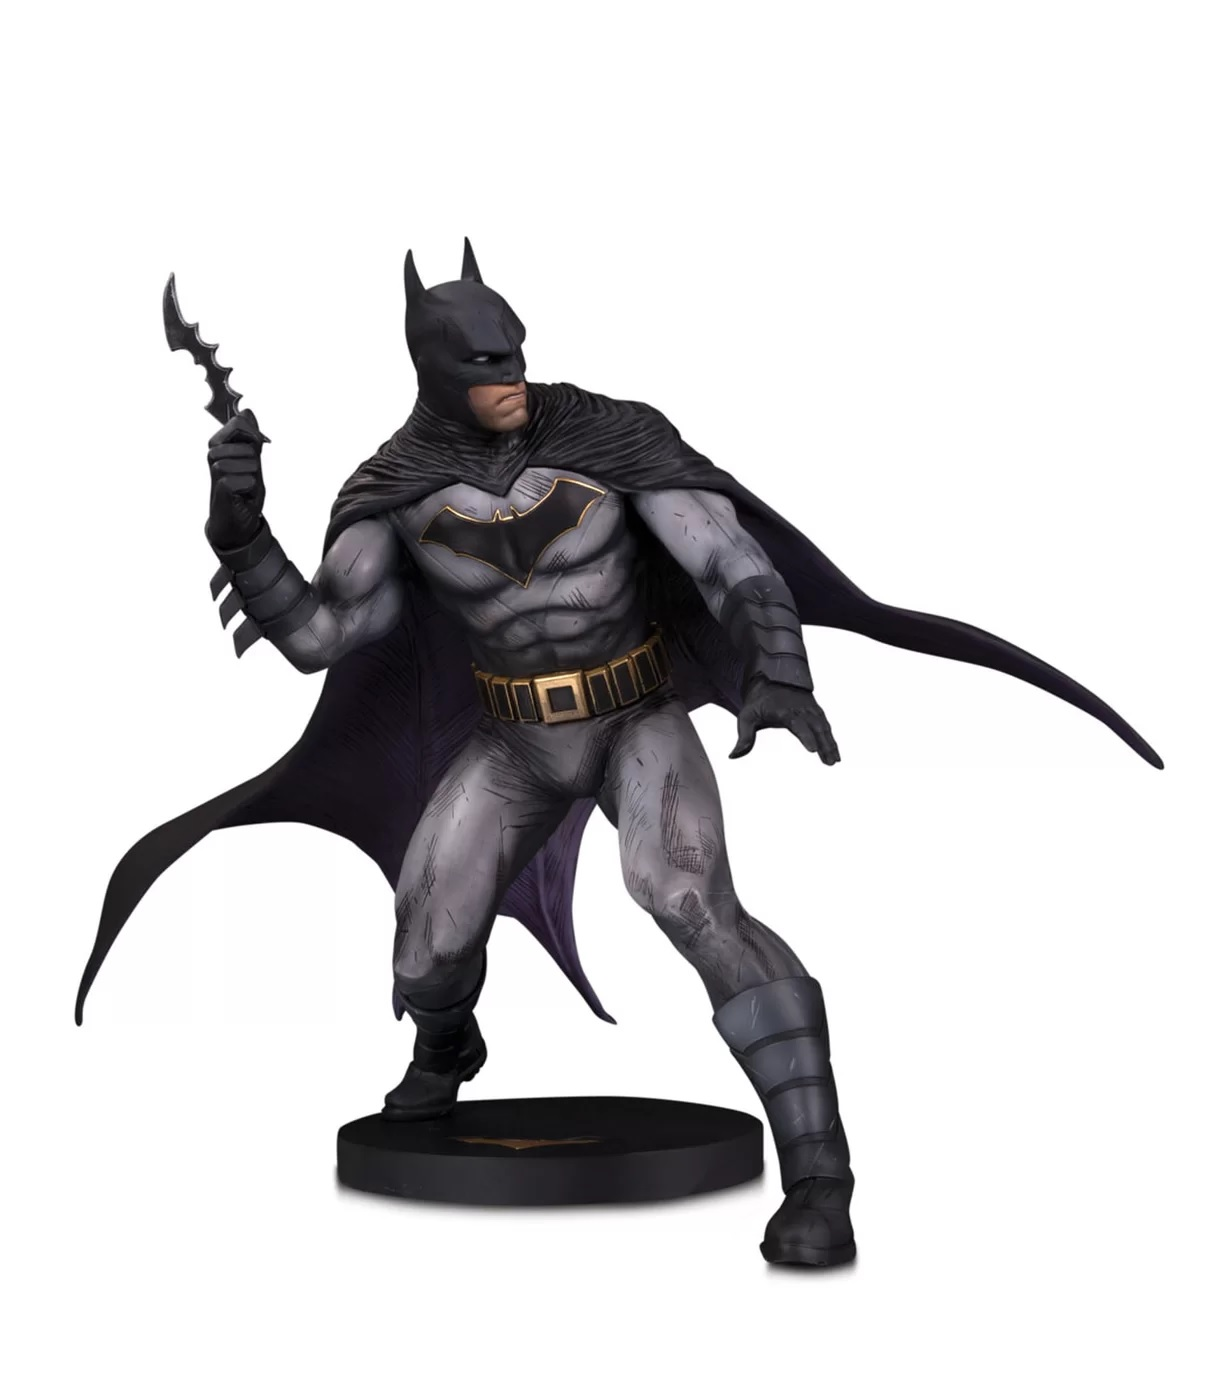 DC Comics Designer Series Batman Coipel Statue